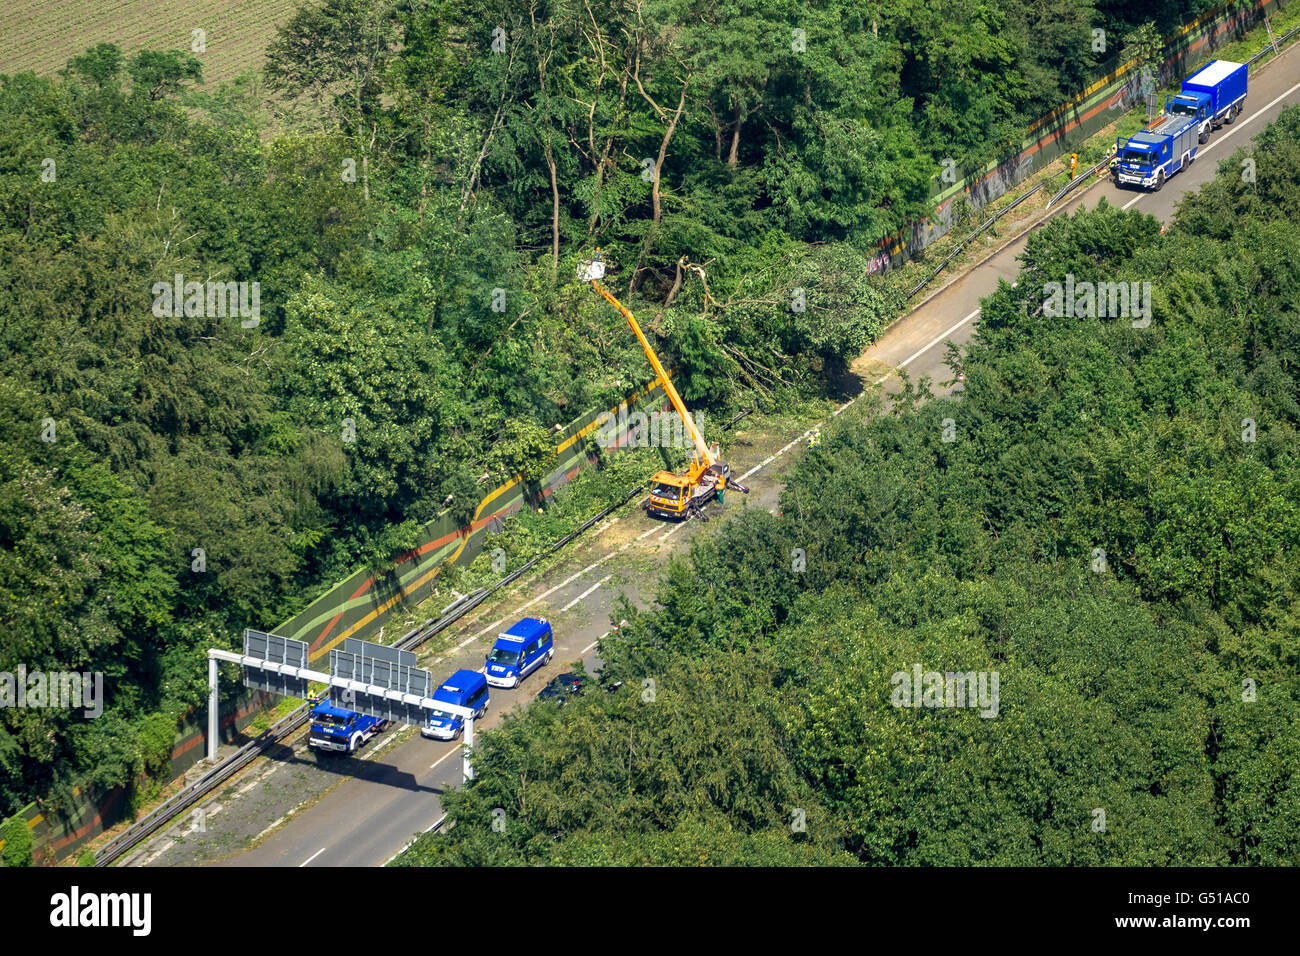 Aerial view, traffic congestion on the A43 towards Herne in Pattern Recklinghausen, storm, storm damage, bent trees, - Stock Image